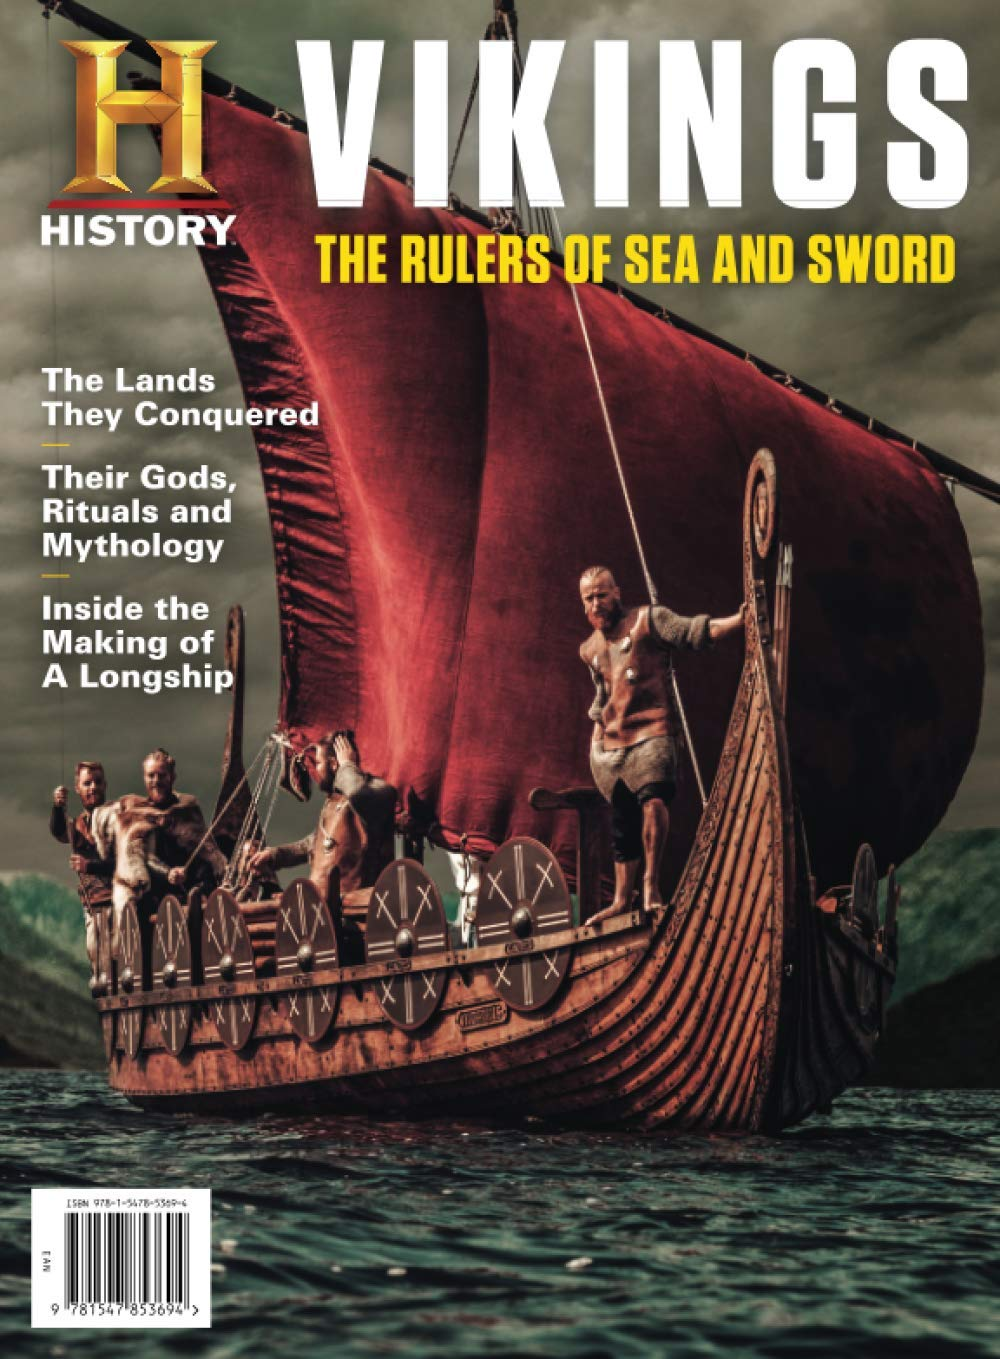 Vikings: The Rulers of Sea and Sword